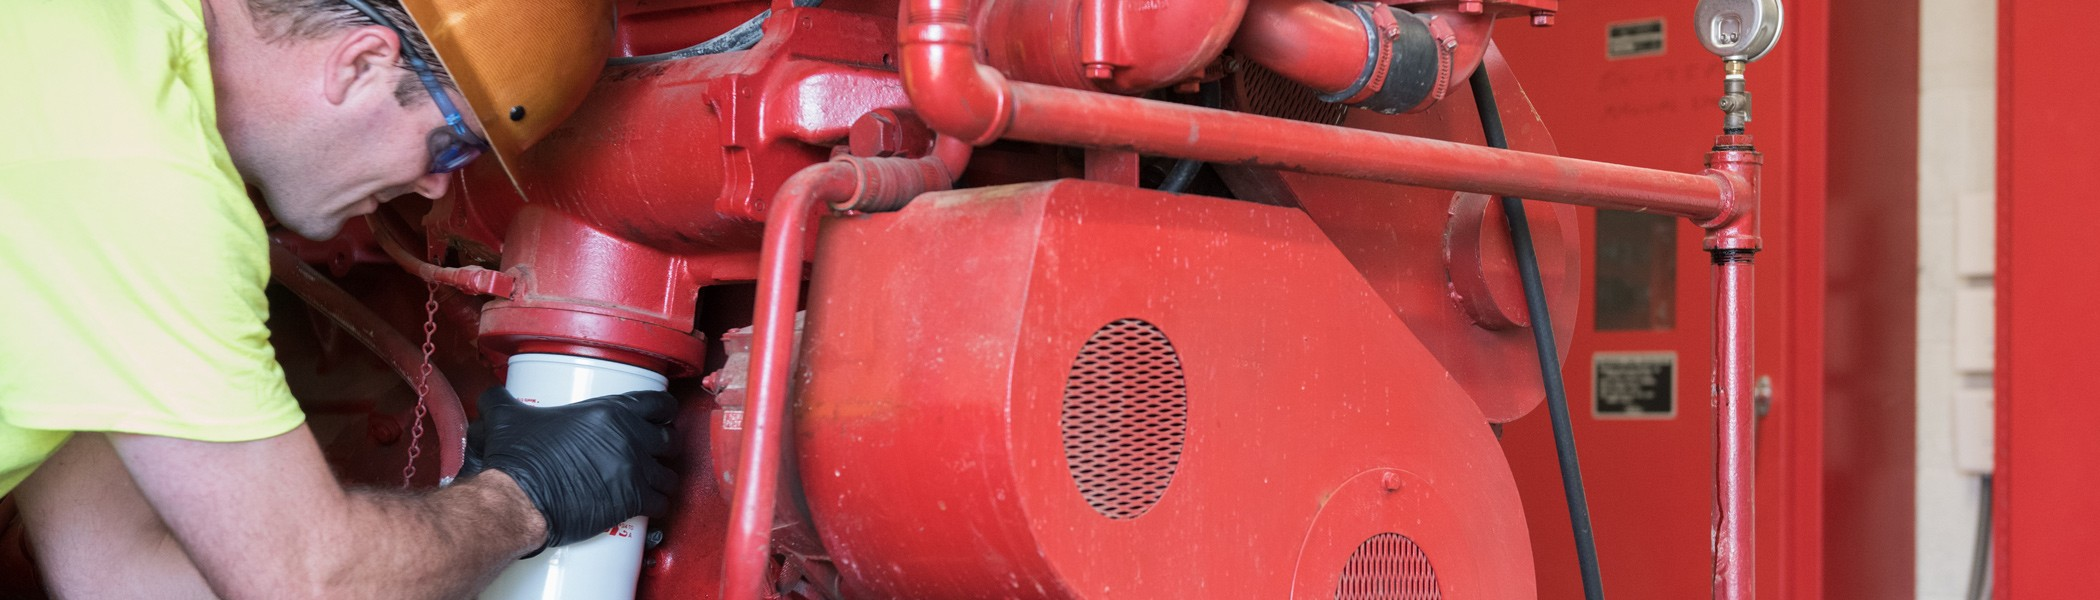 Fire pump services, fire pumps, fire pump installation